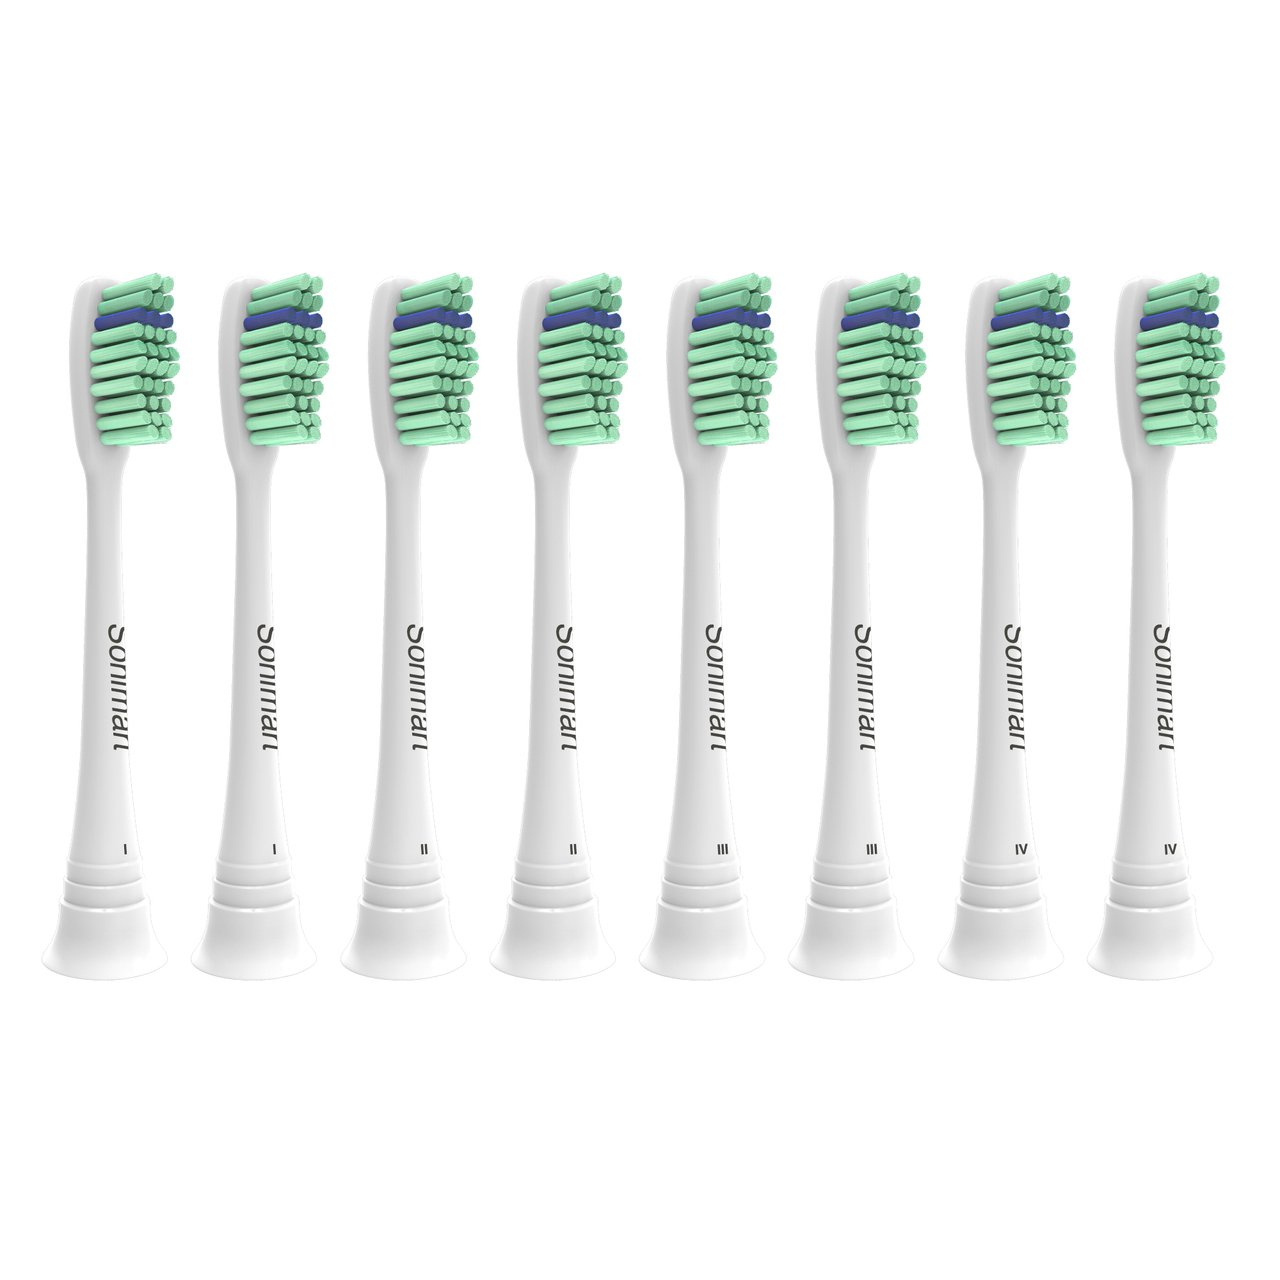 Sonimart Premium Replacement Toothbrush Heads for Philips Sonicare ProResults, 8 pack, fits Essence+, Plaque Control, Gum Health, DiamondClean, FlexCare, HealthyWhite and EasyClean